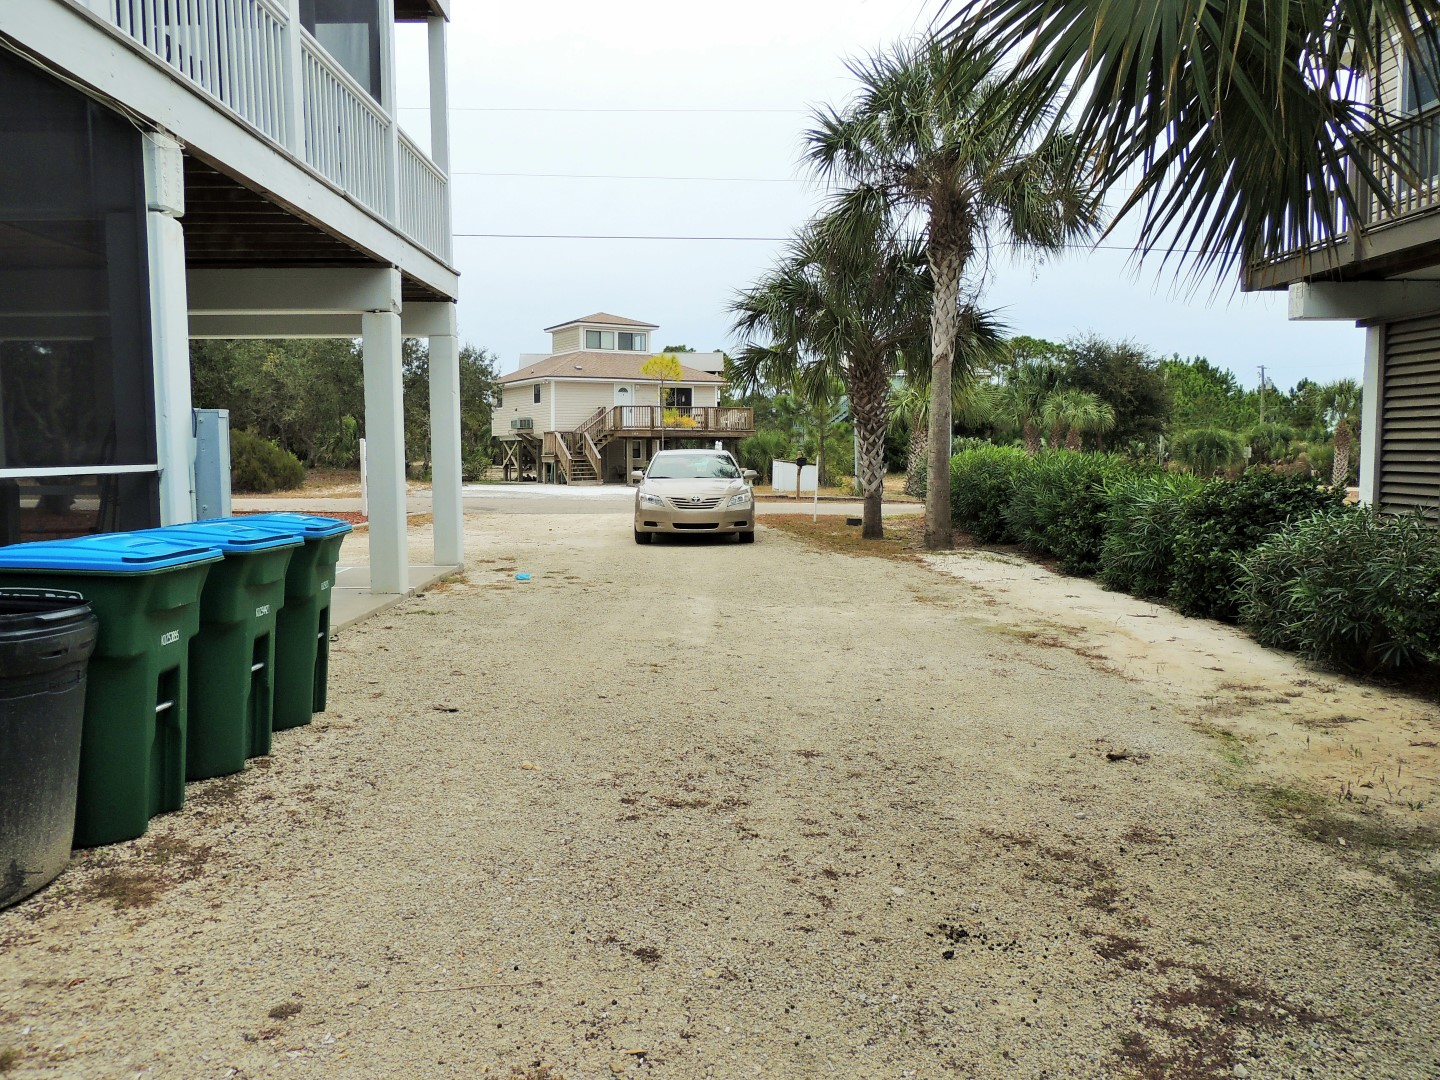 Three Palms Huge Driveway- Plenty of Room for a Boat or Trailer-10